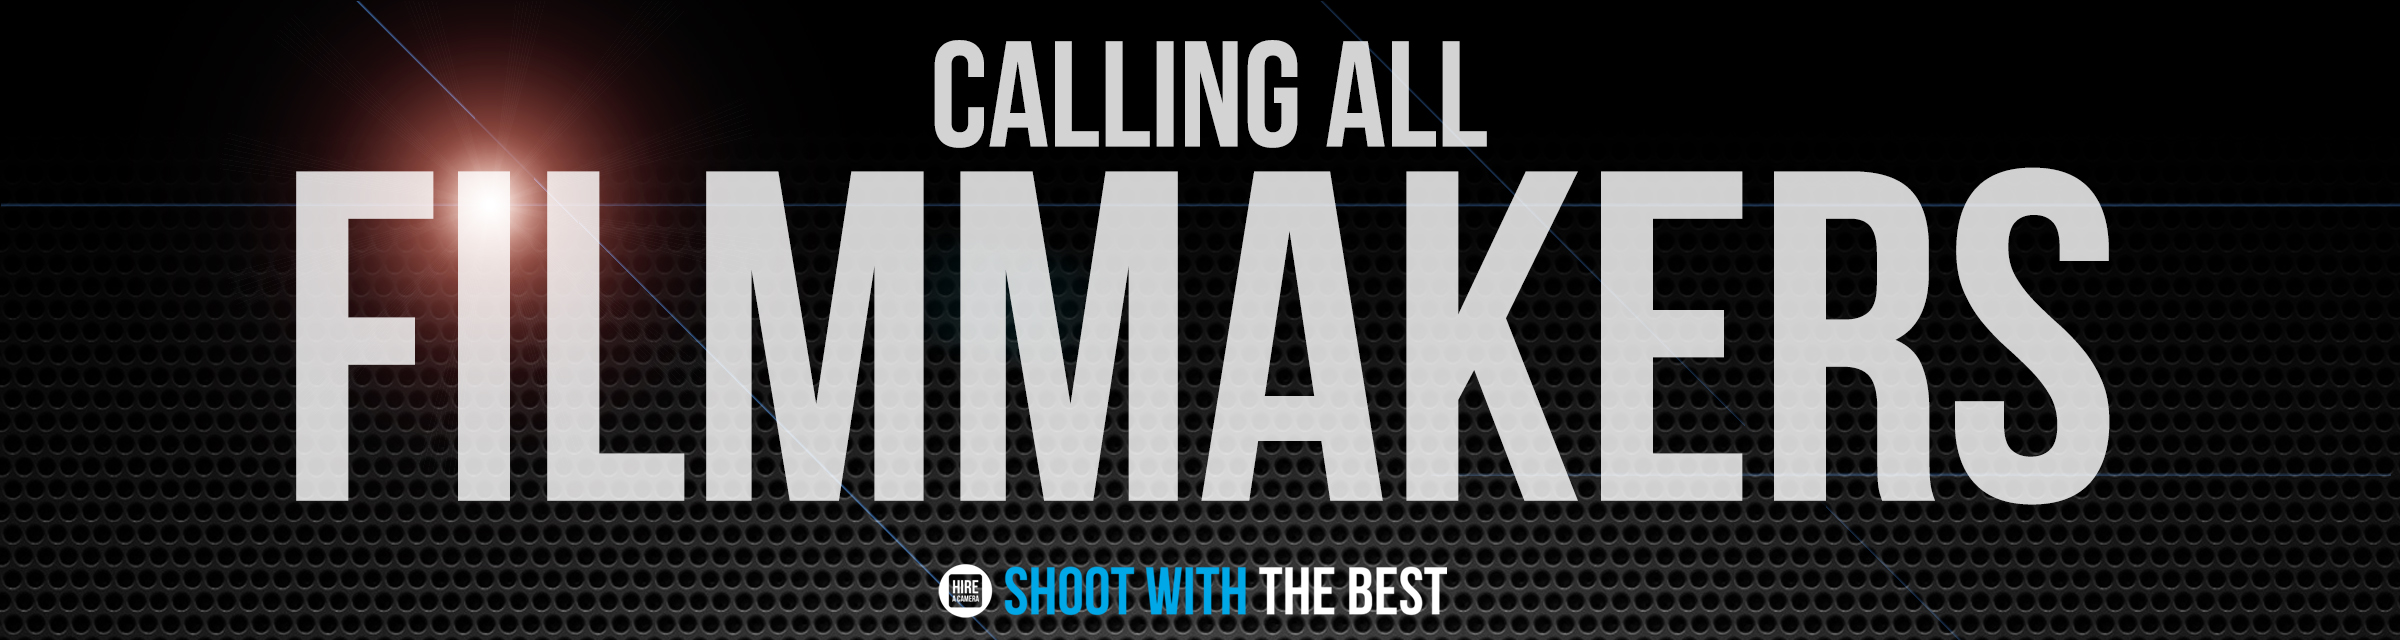 Calling all filmmakers!